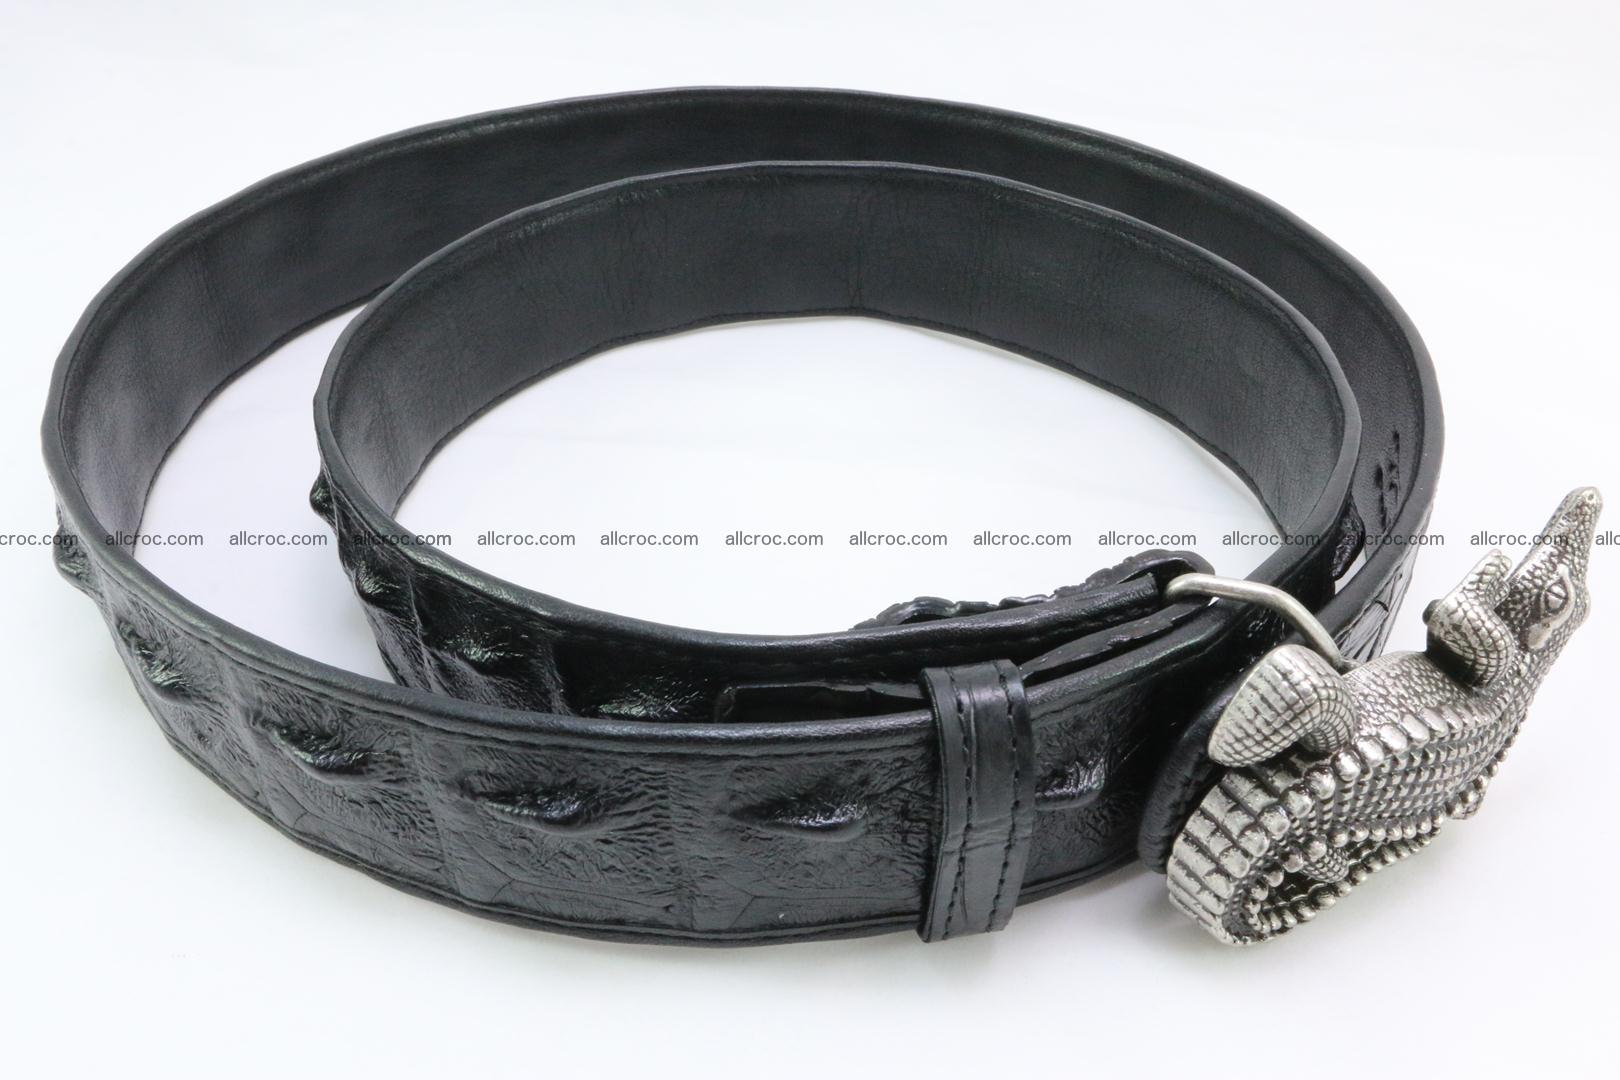 Genuine crocodile leather hornback belt 079 Foto 5